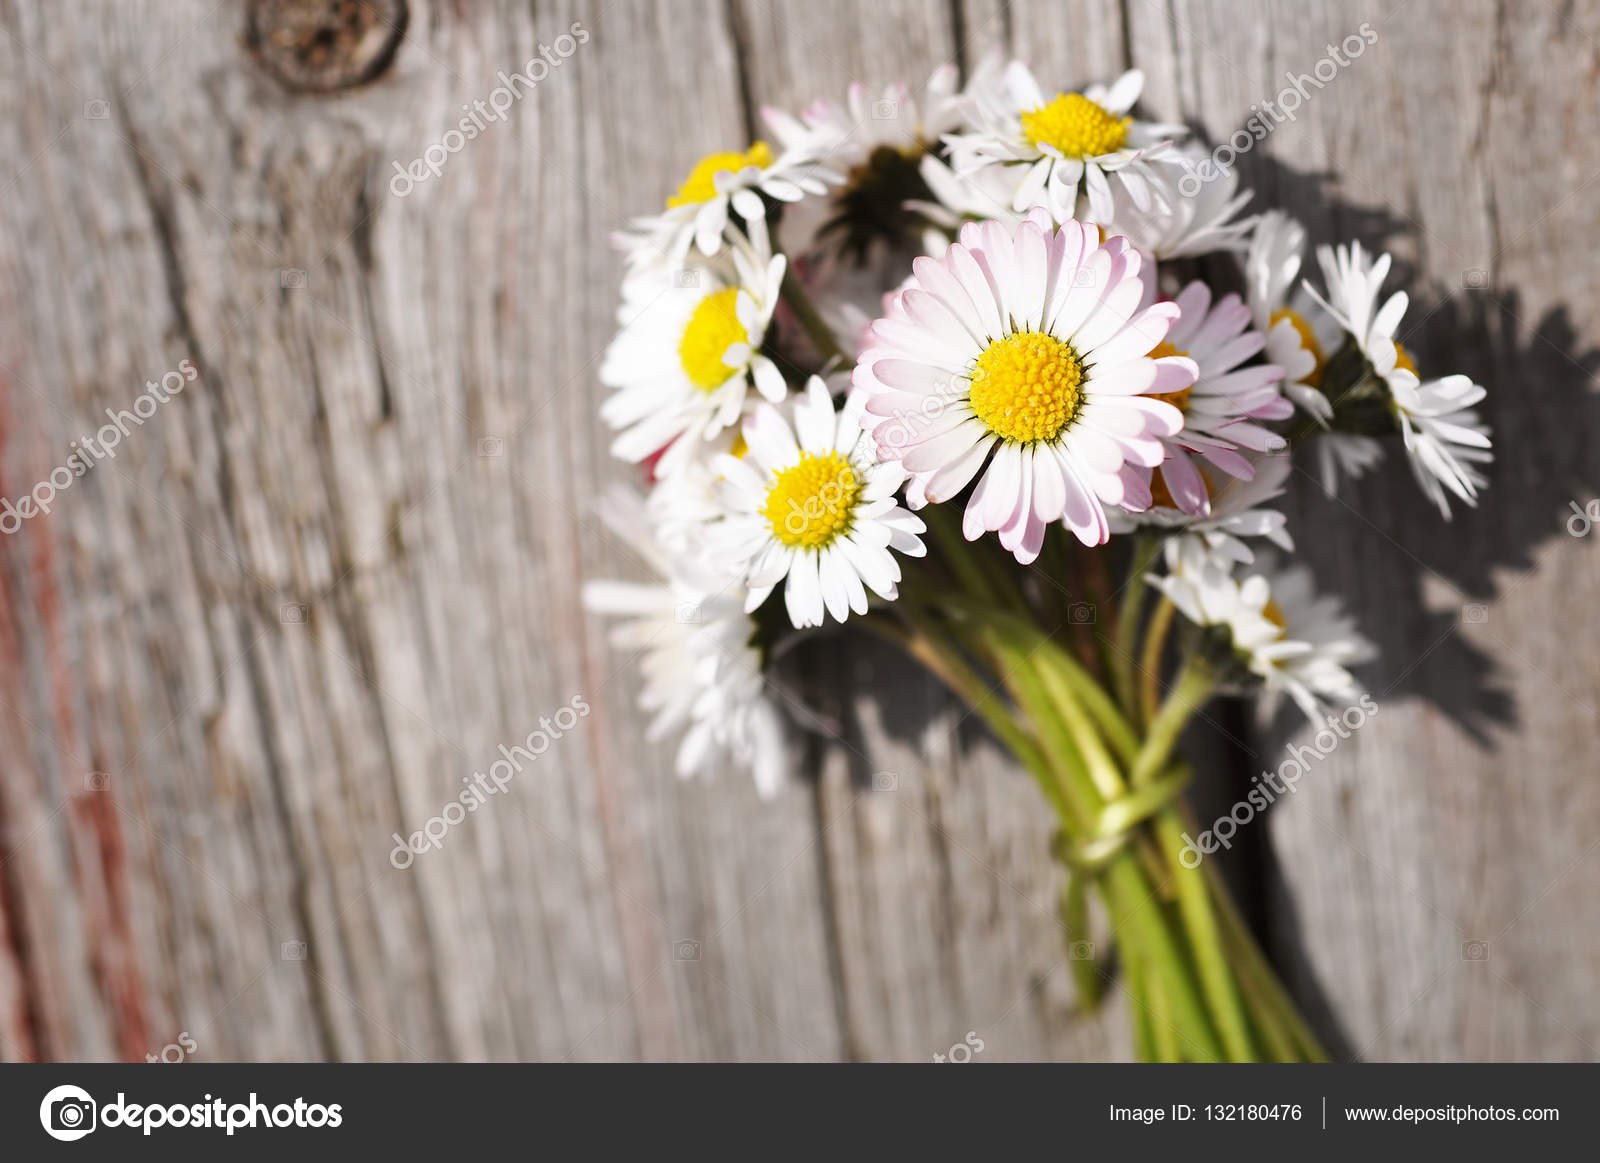 Bouquet of daisy flowers stock photo nixki 132180476 bouquet of daisy flowers on a wooden background photo by nixki izmirmasajfo